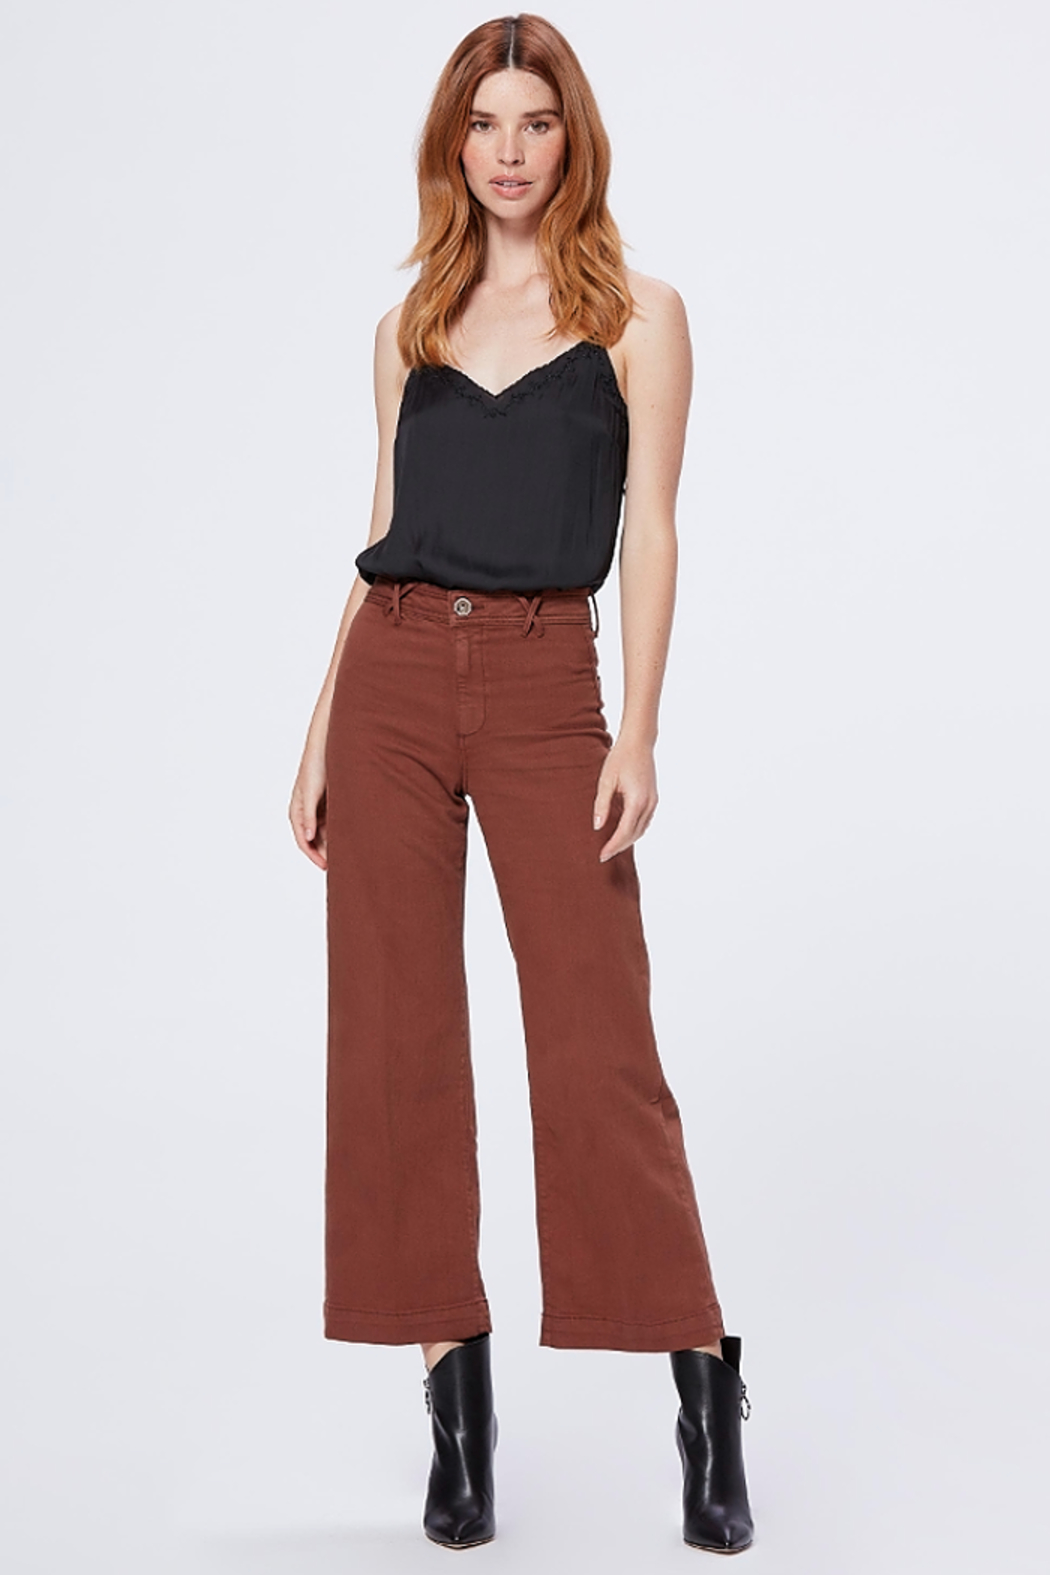 Paige Denim Camel Anessa Bottoms - Main Image